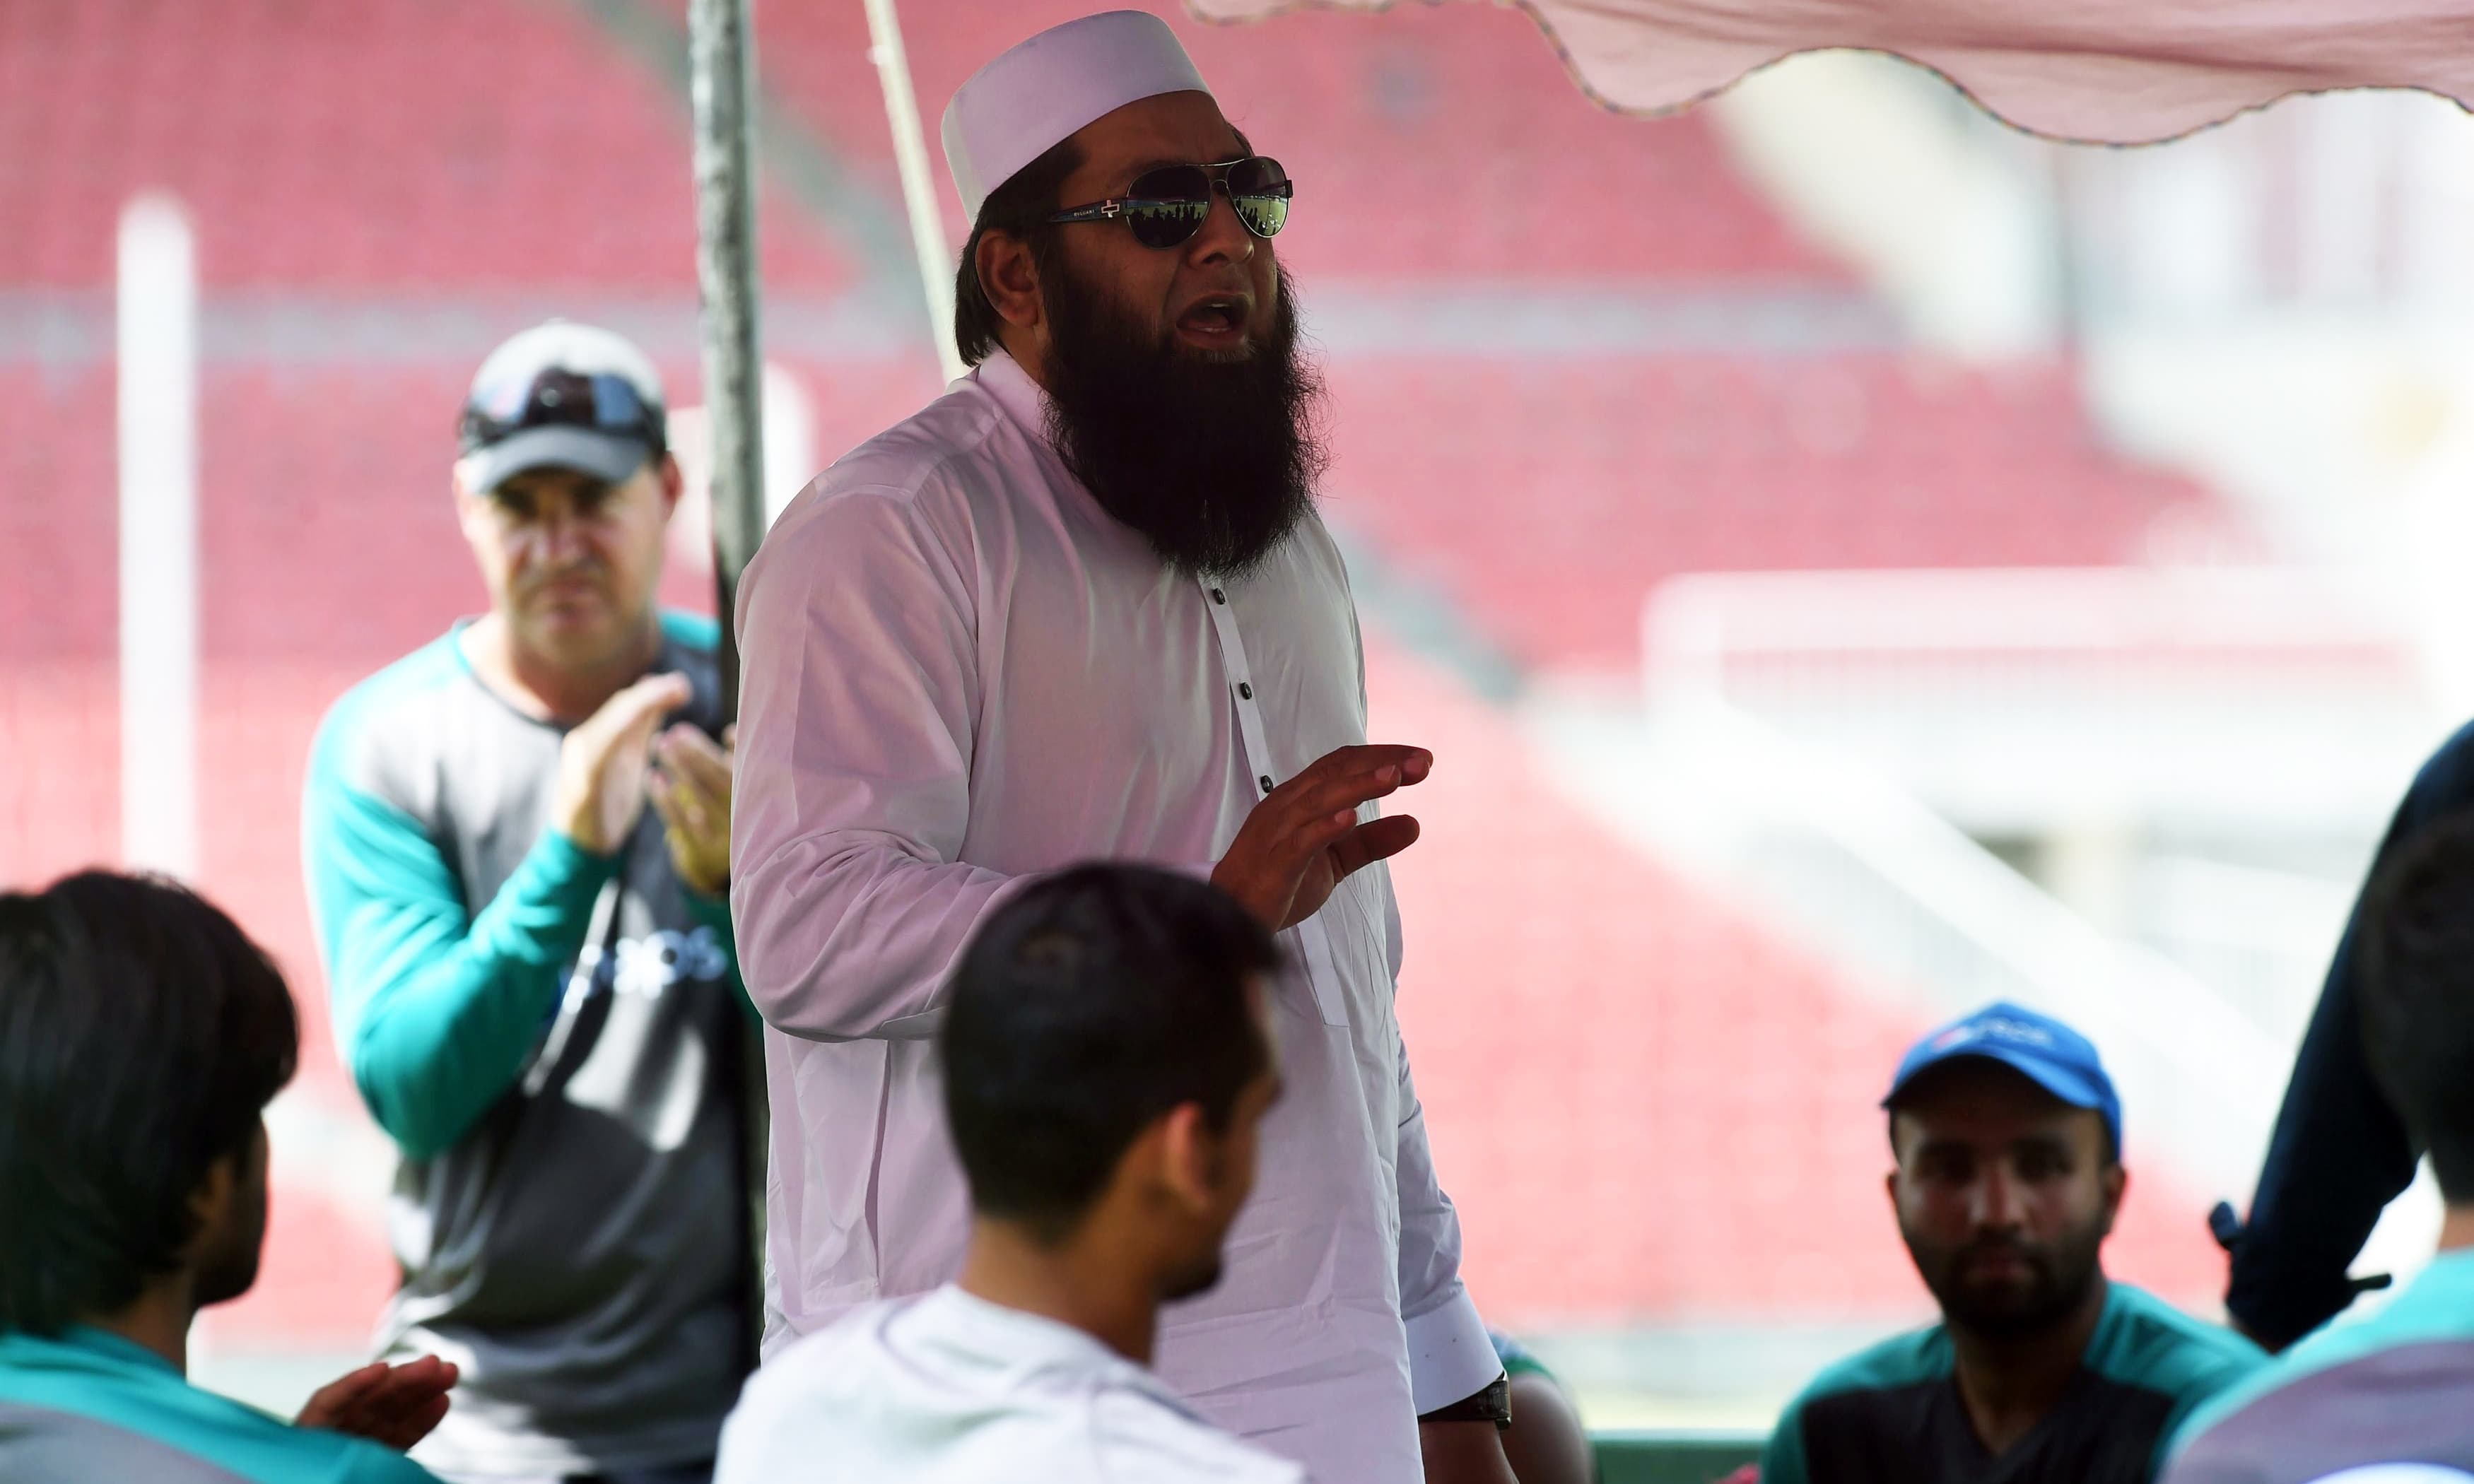 PCB to axe Inzamam, Arthur after World Cup